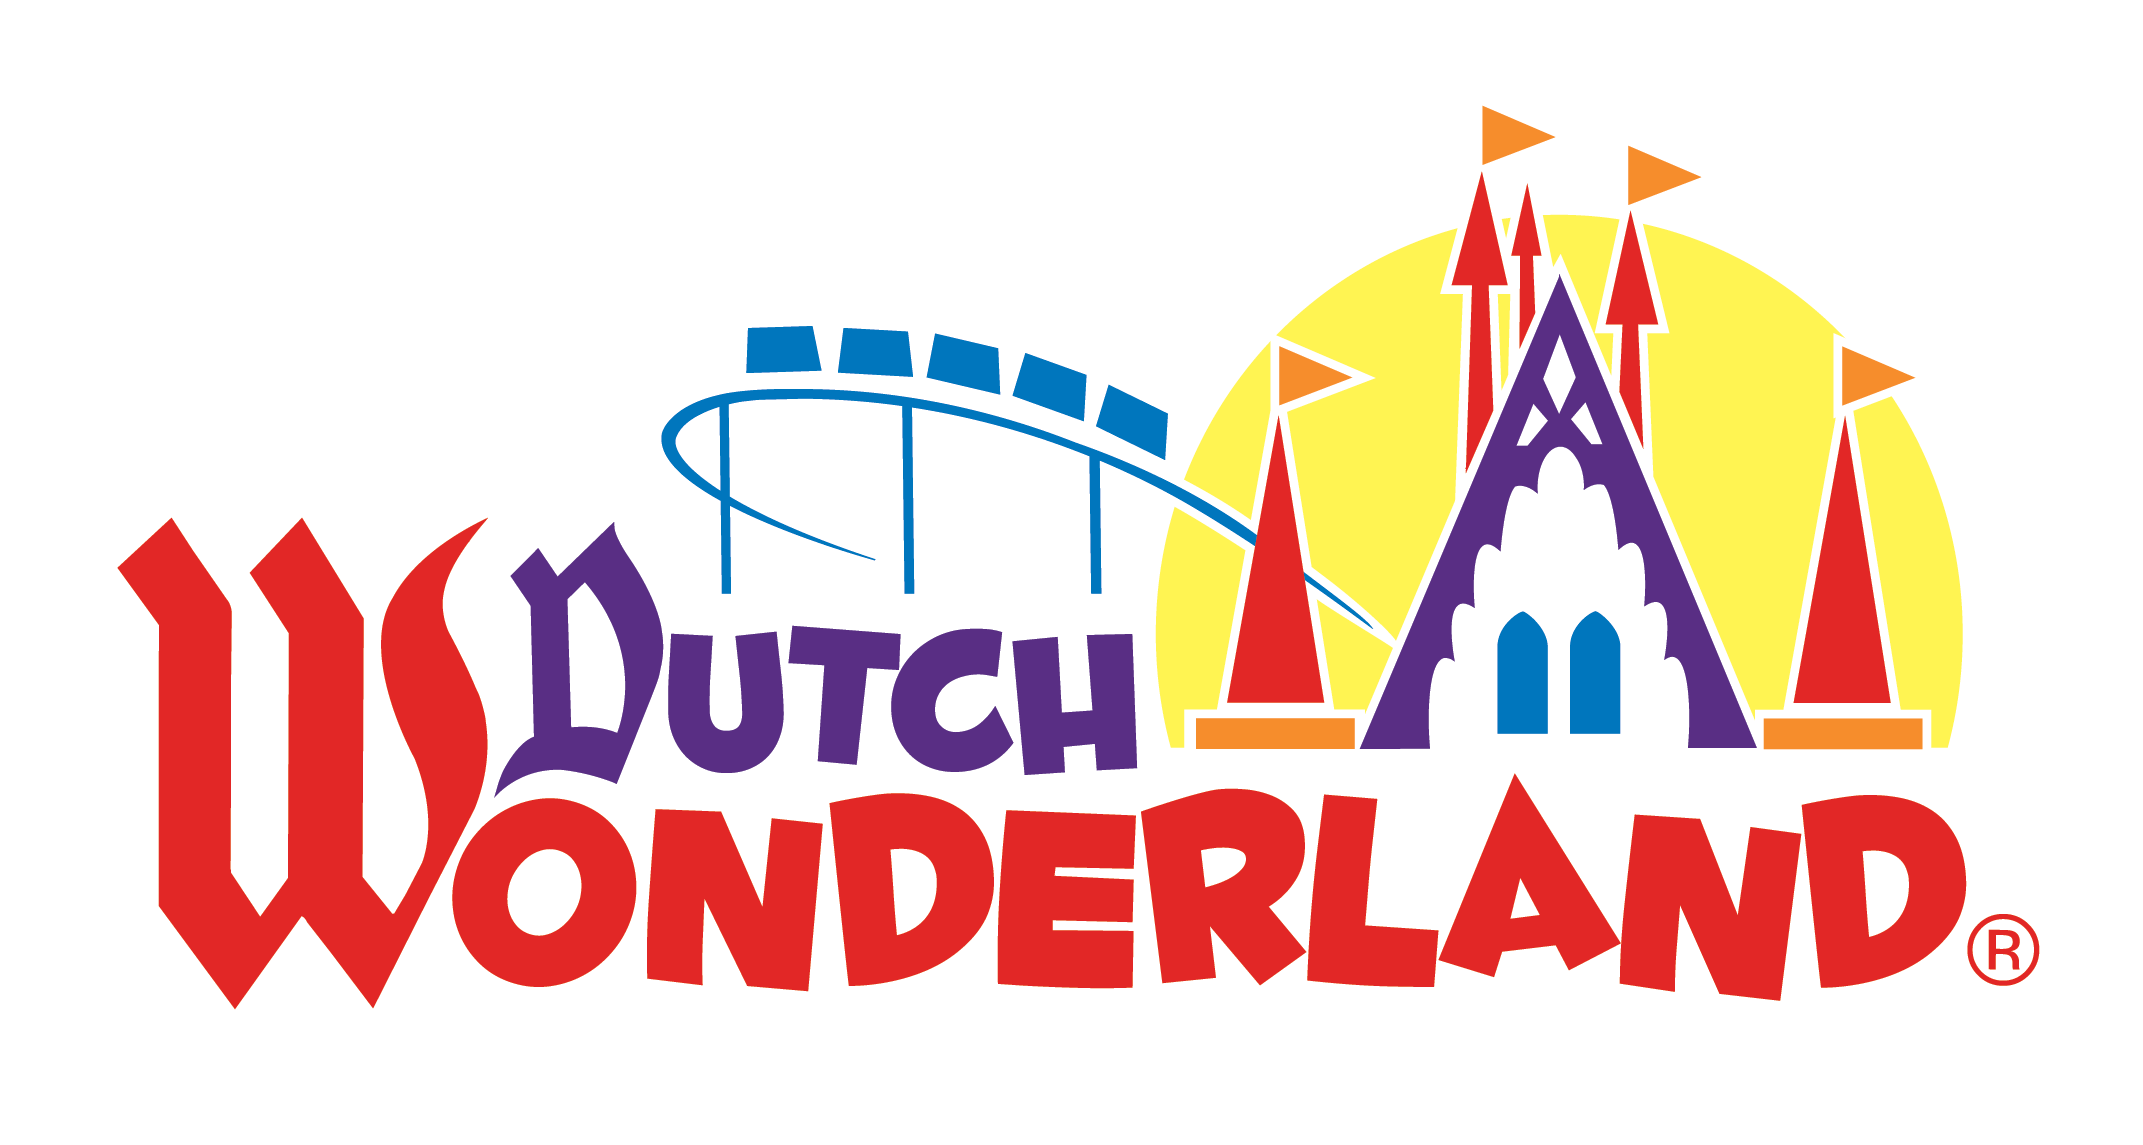 Dutch Wonderland Logo